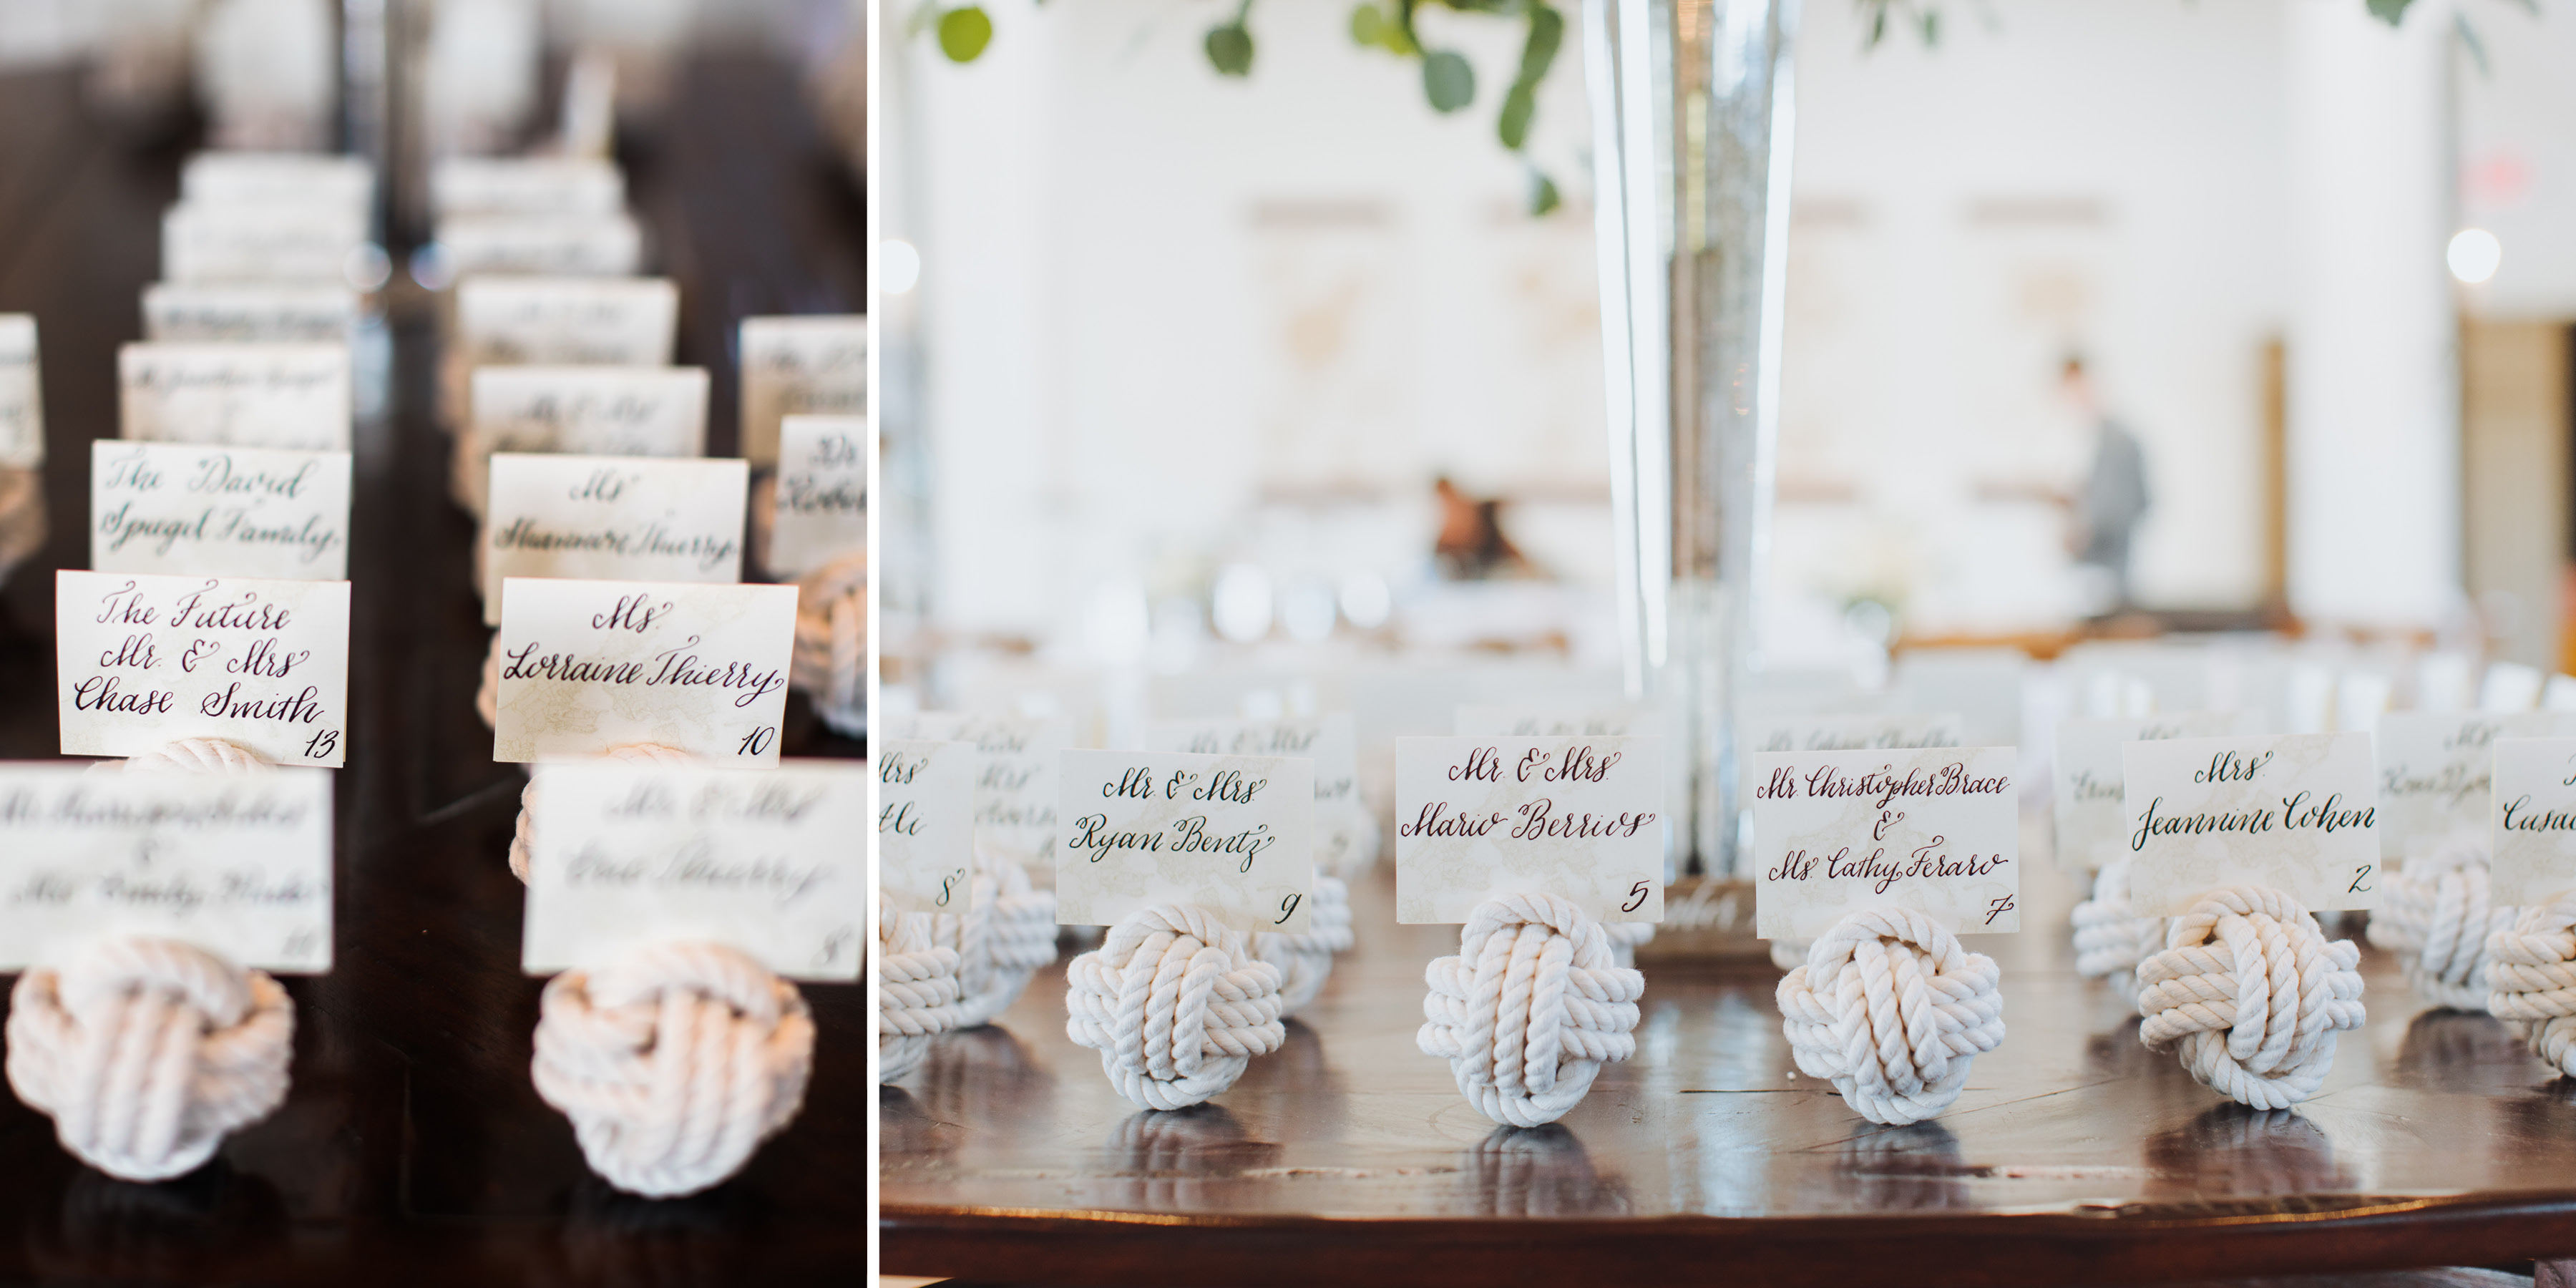 Nautical Hand Calligraphy Seating Cards, Nautical Knots with Map Detail Escort Cards